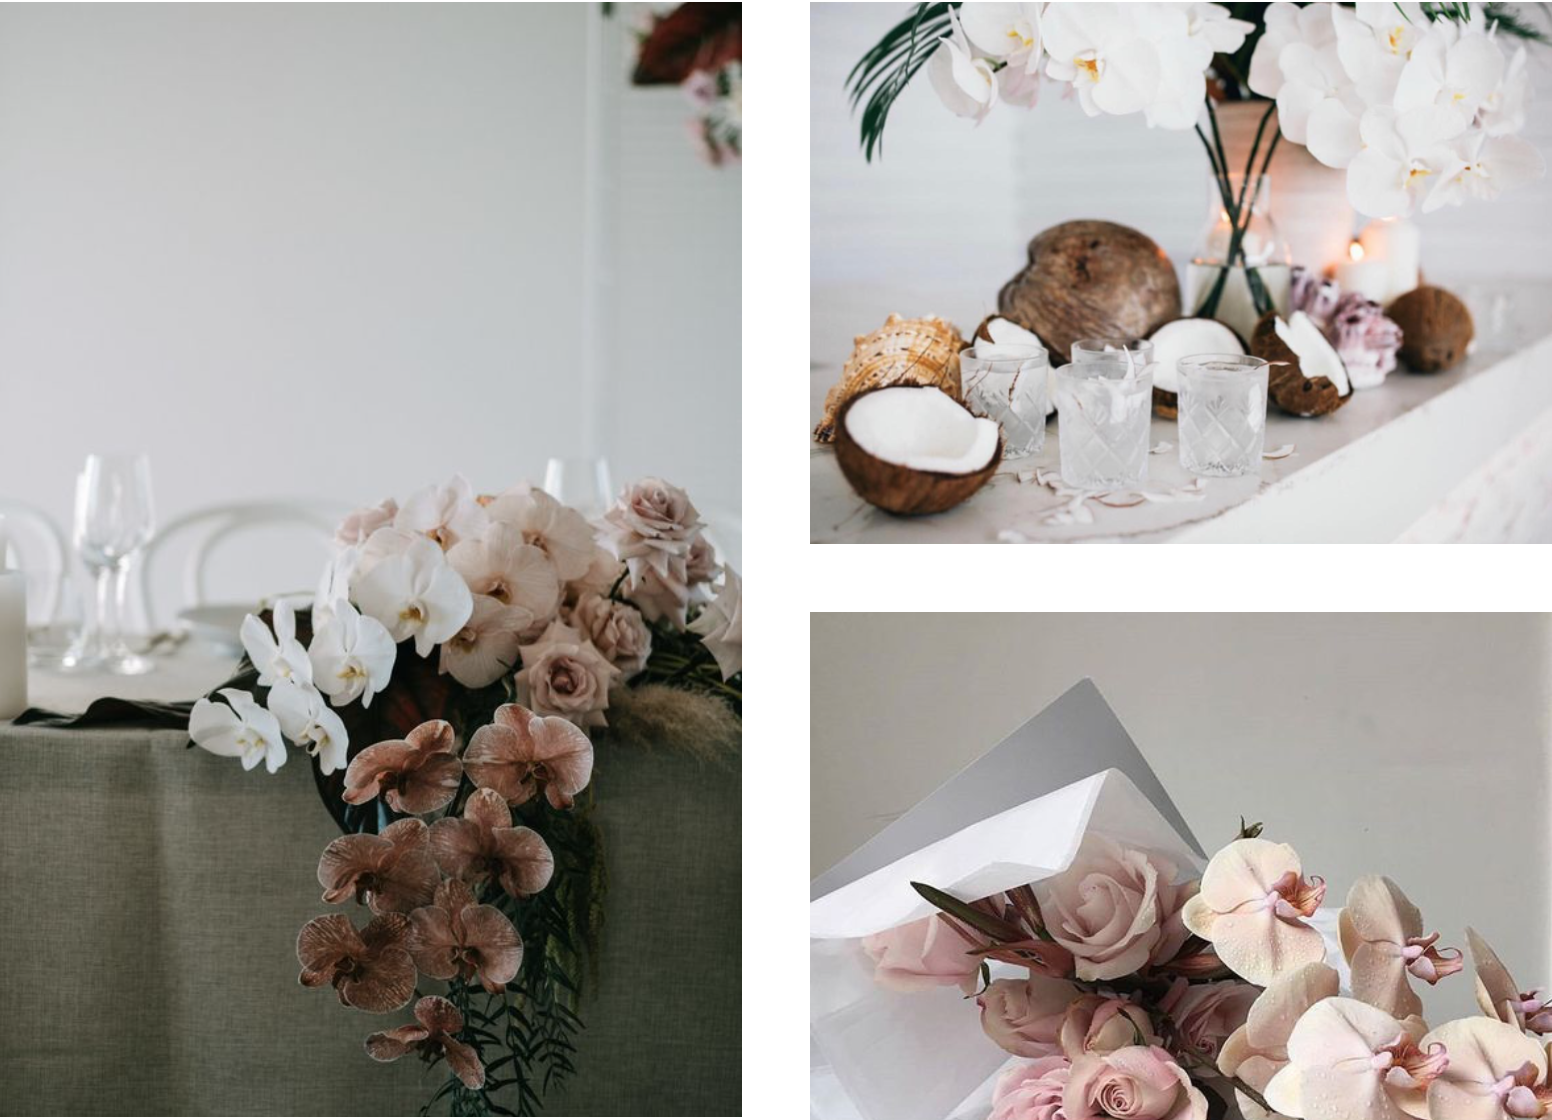 5 wedding flower trends for 2018, with Hampton Event Hire